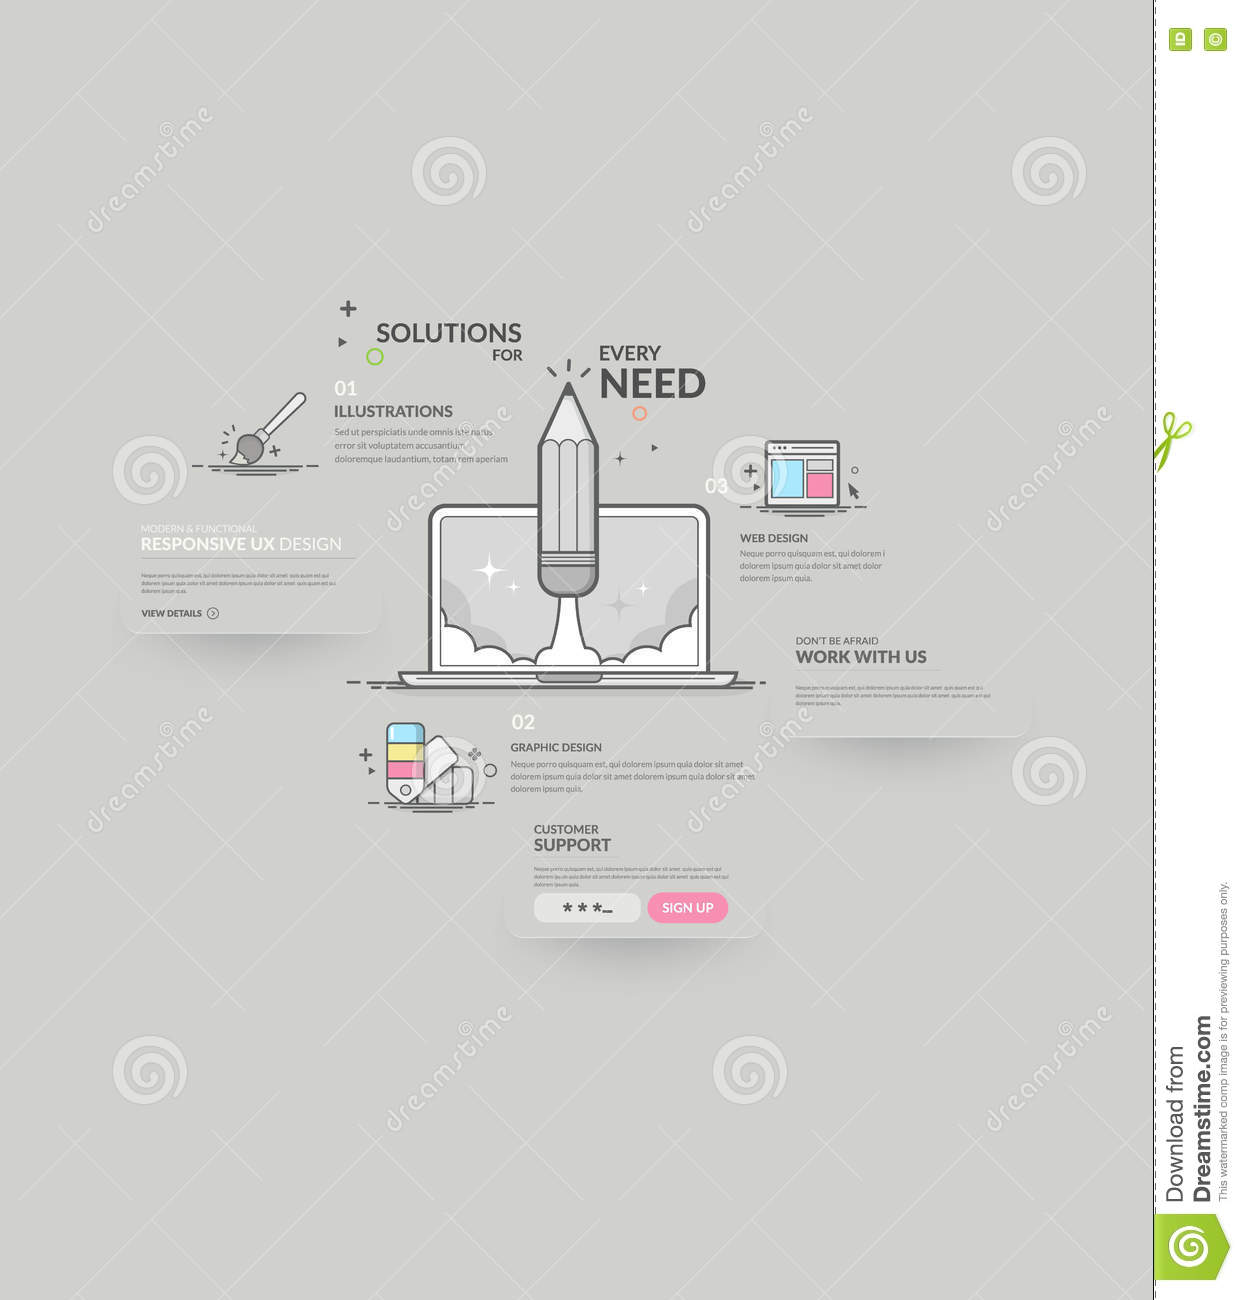 Website navigation elements stock vector illustration of icons download website navigation elements stock vector illustration of icons elements 77258249 ccuart Image collections